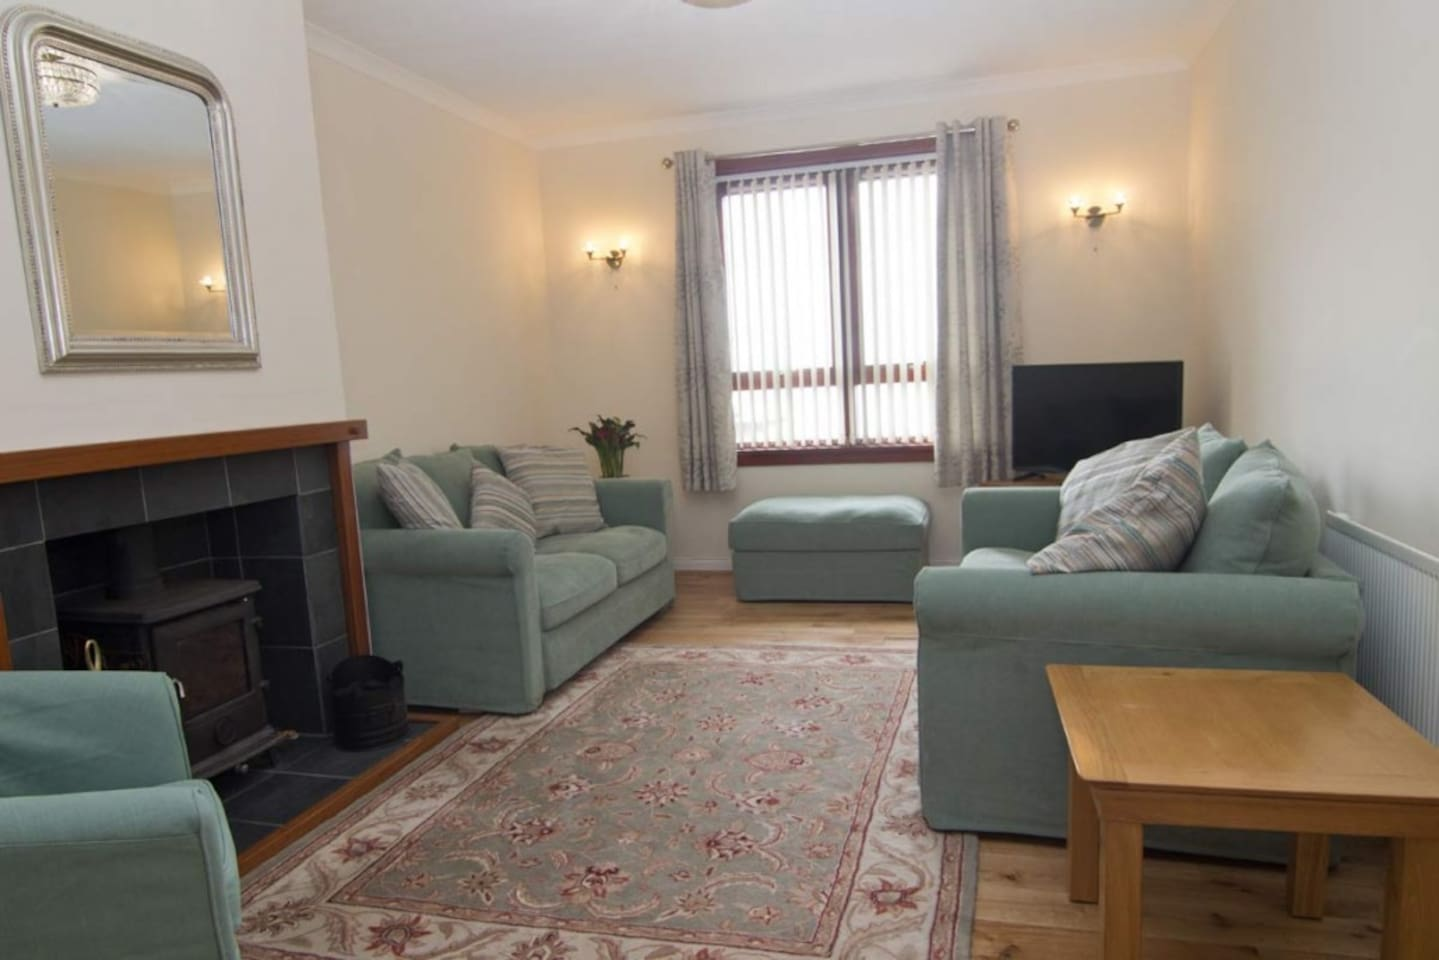 Cozy living area, overlooking sea to Isle of Skye and views to Mallaig Harbour. Aga stove.